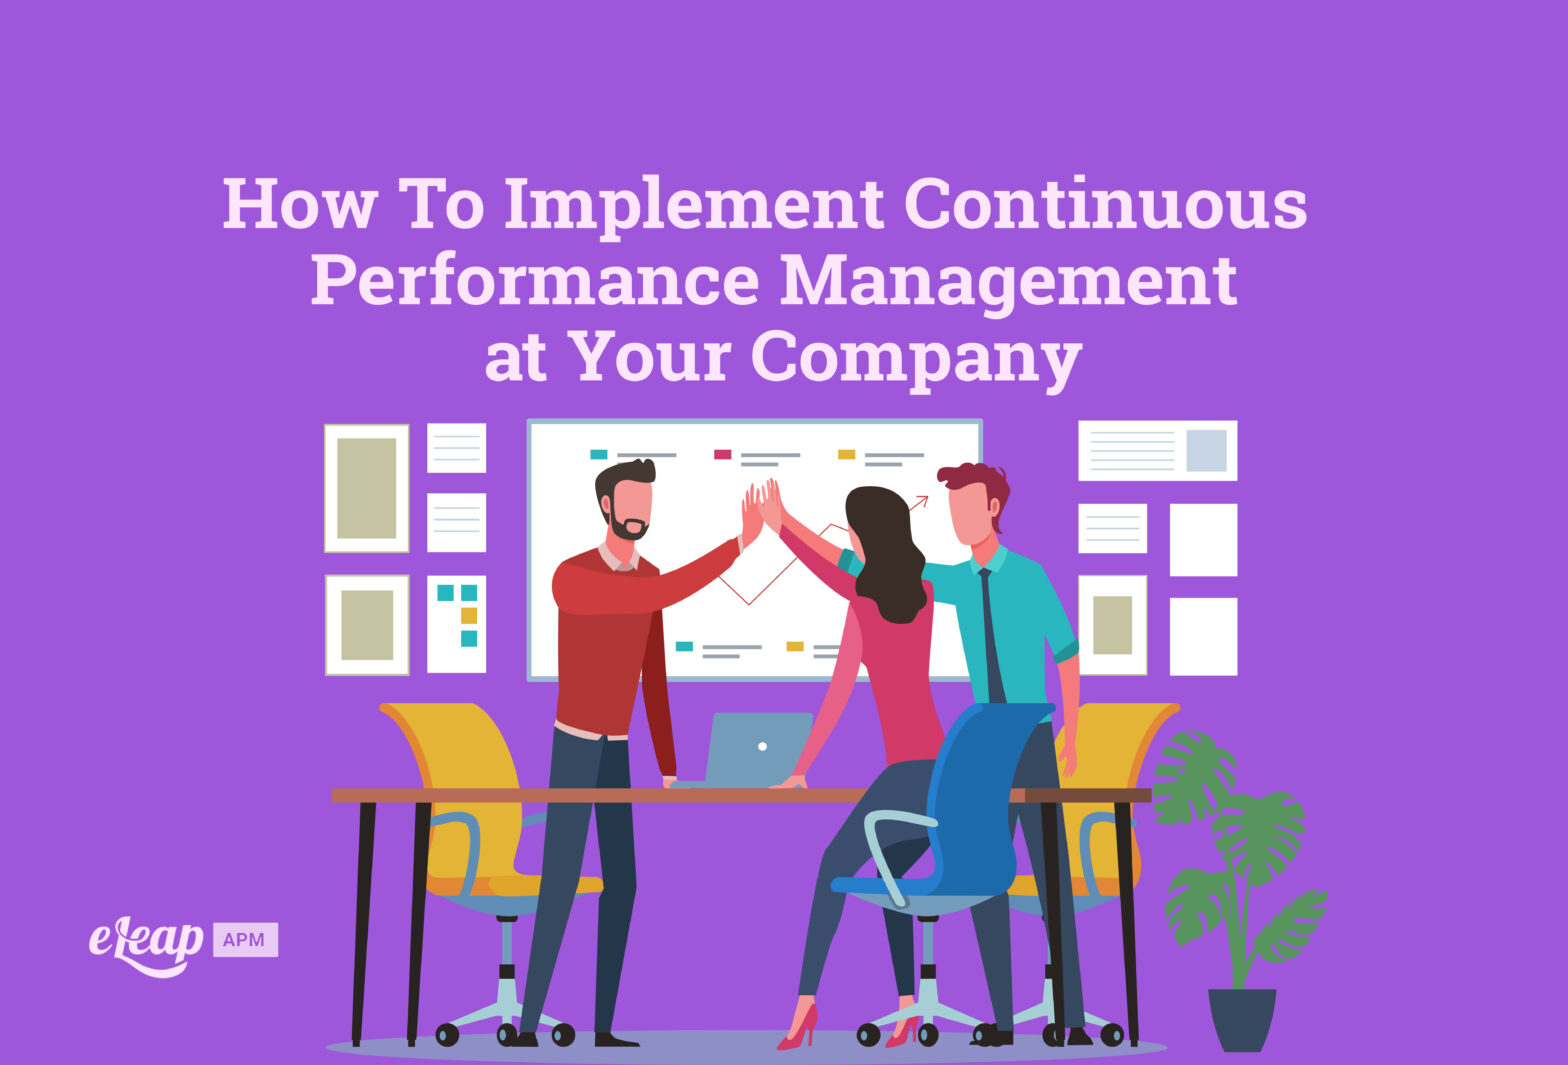 How To Implement Continuous Performance Management at Your Company